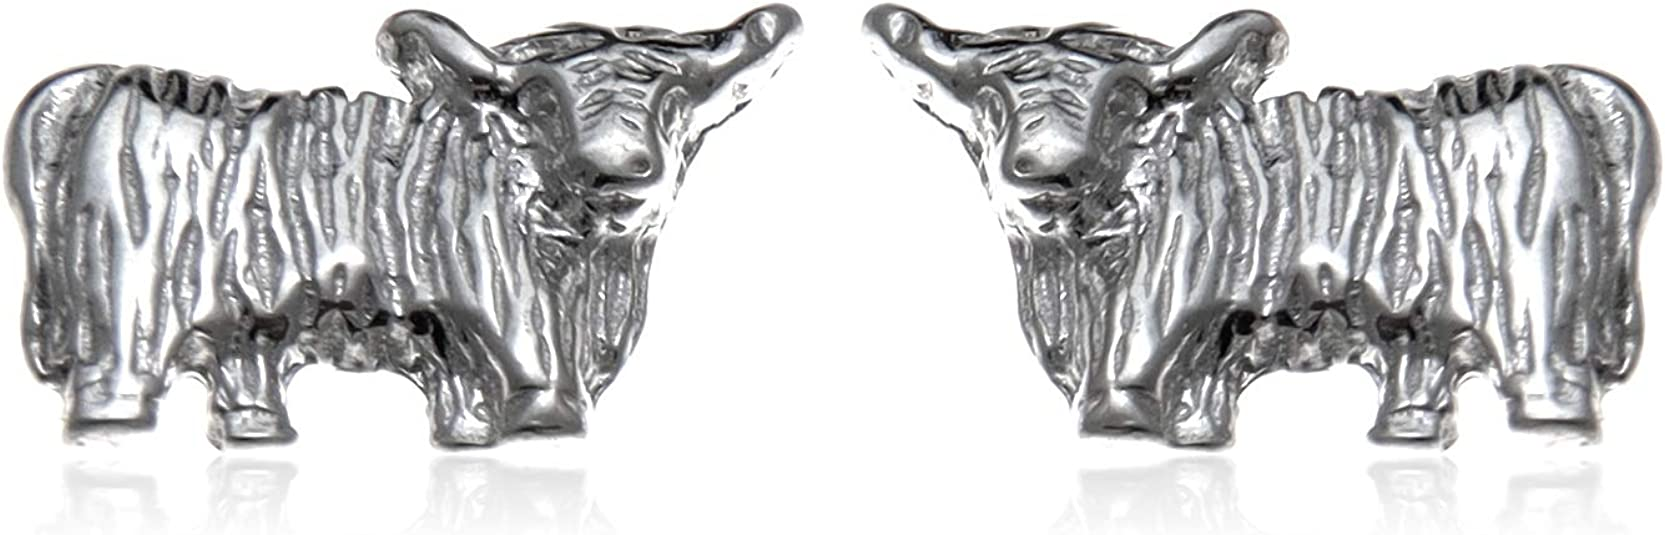 Cow cufflinks White bull Scottish cow,cow Silver Highland Cow cufflinks: Unique Scottish jewellery gift for men white cow Highland cow